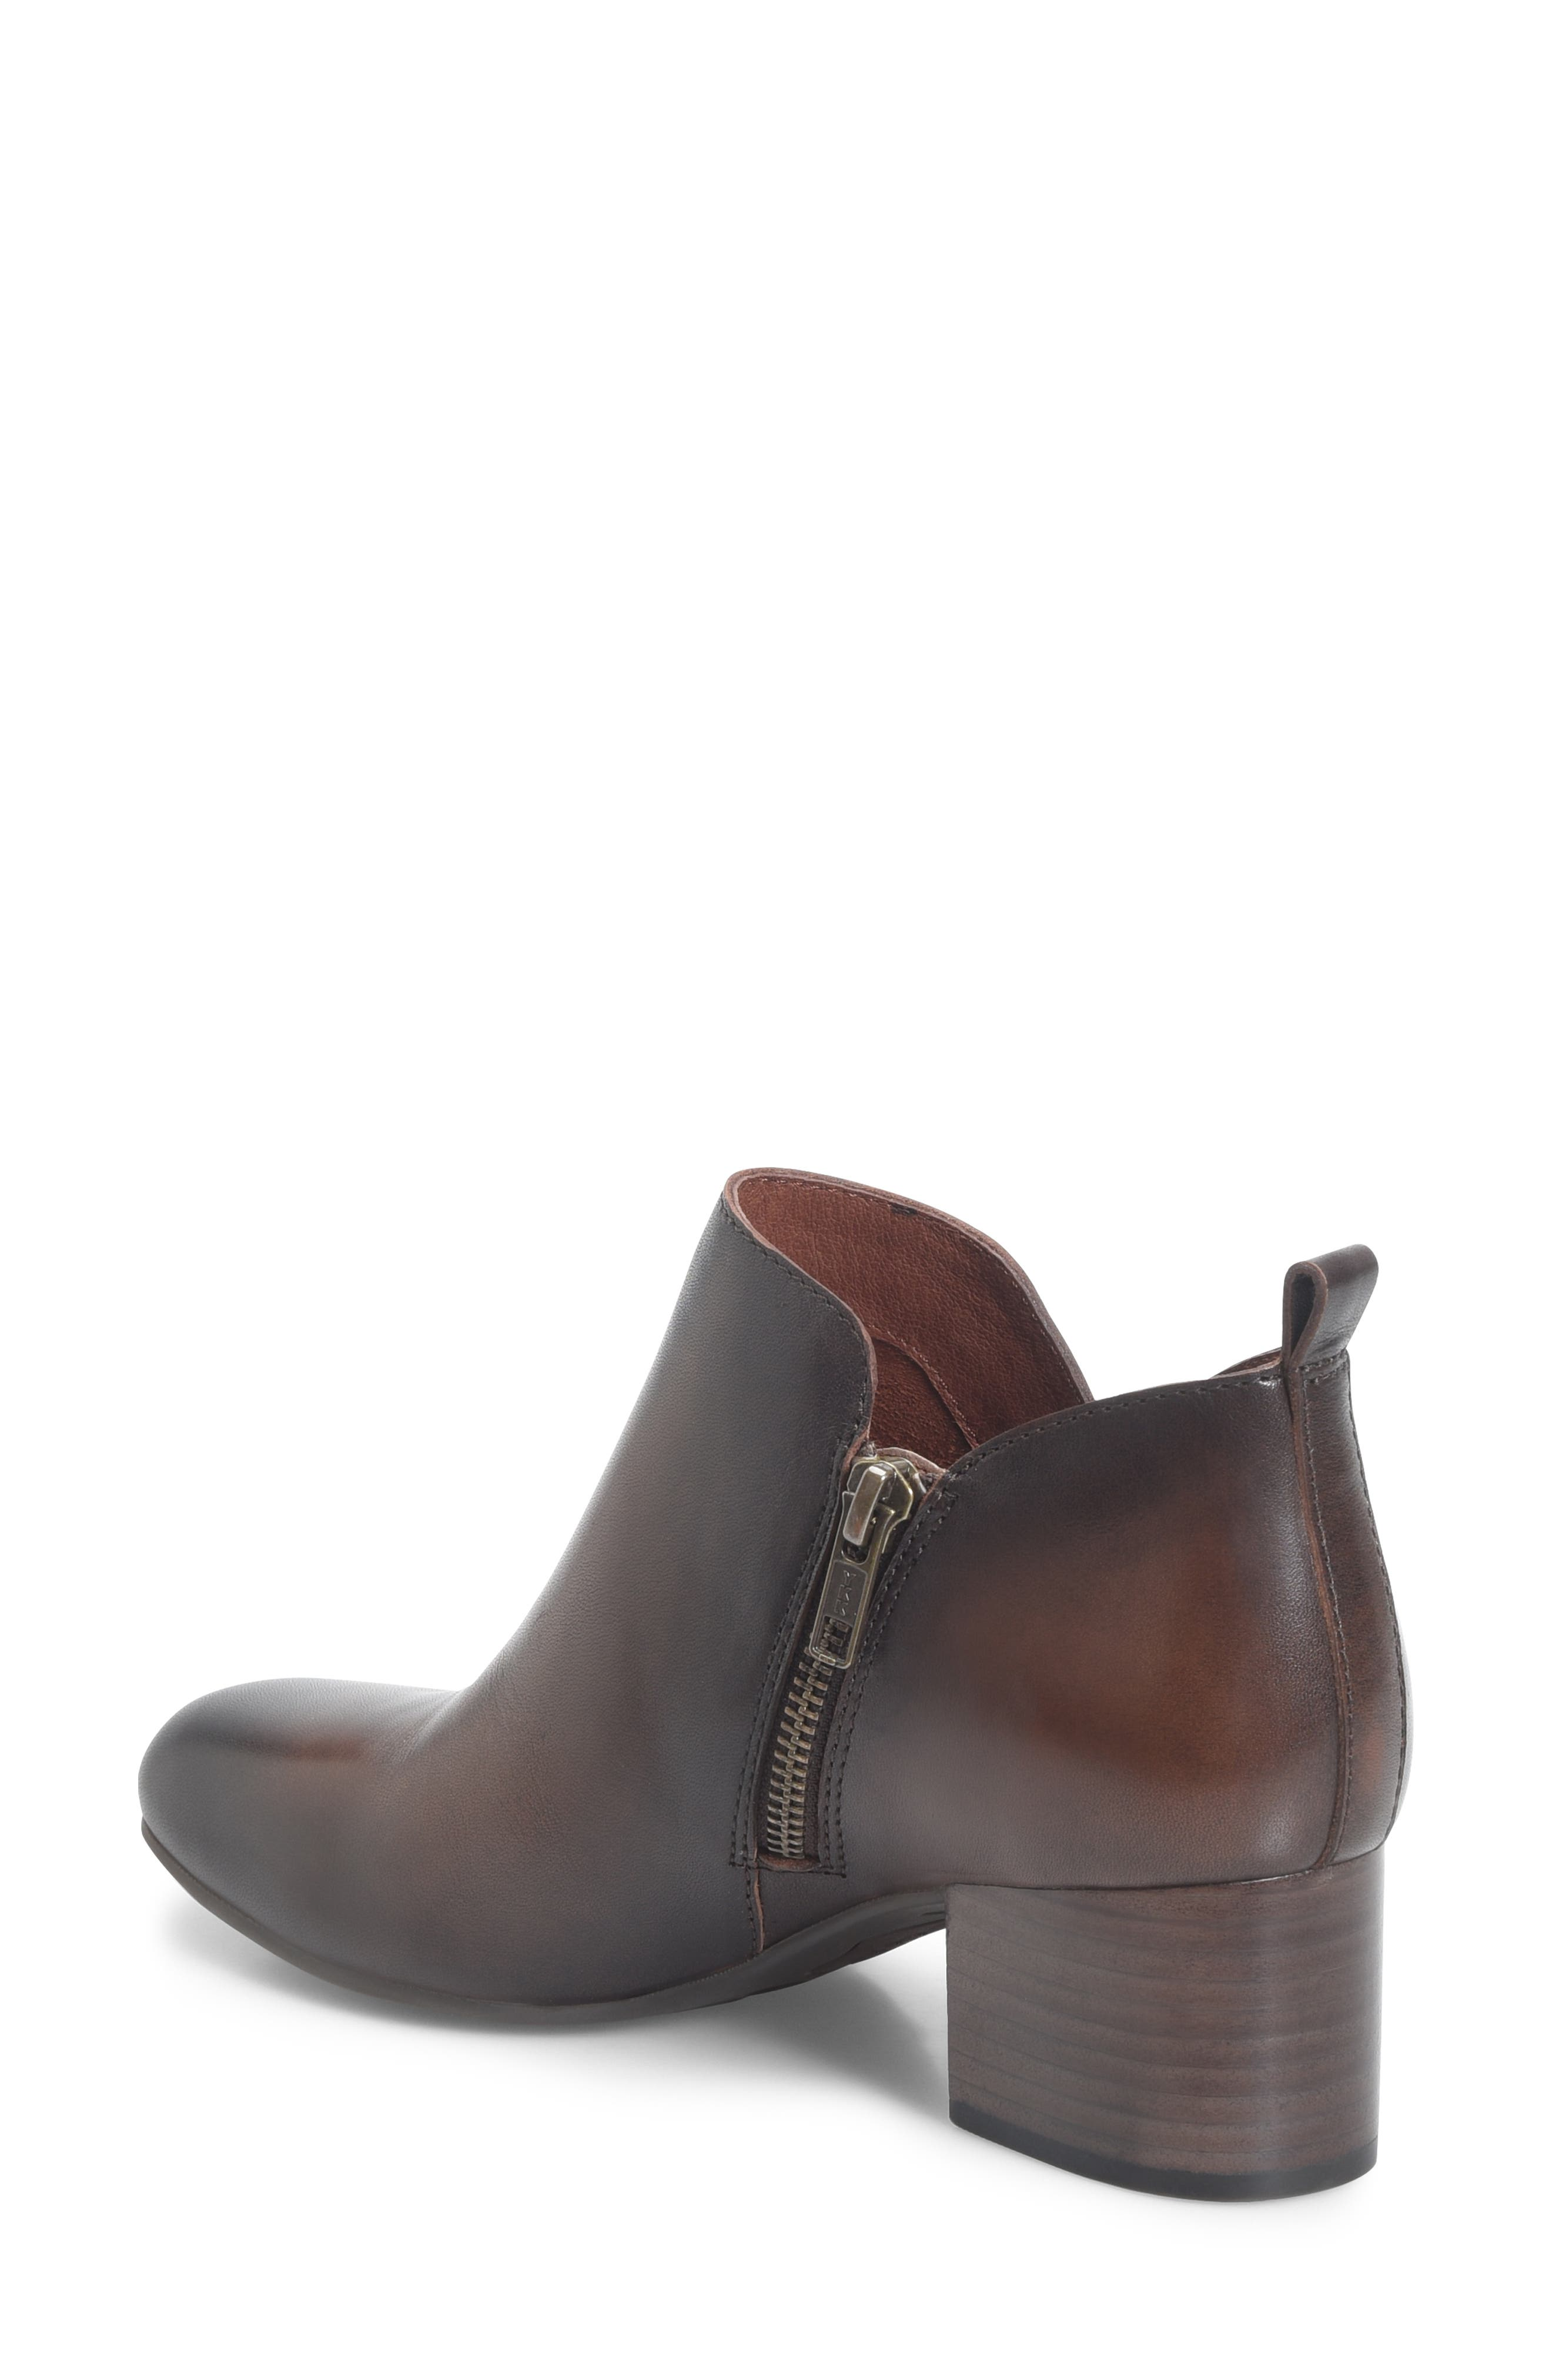 Aneto Bootie,                             Alternate thumbnail 2, color,                             BROWN/ BROWN LEATHER